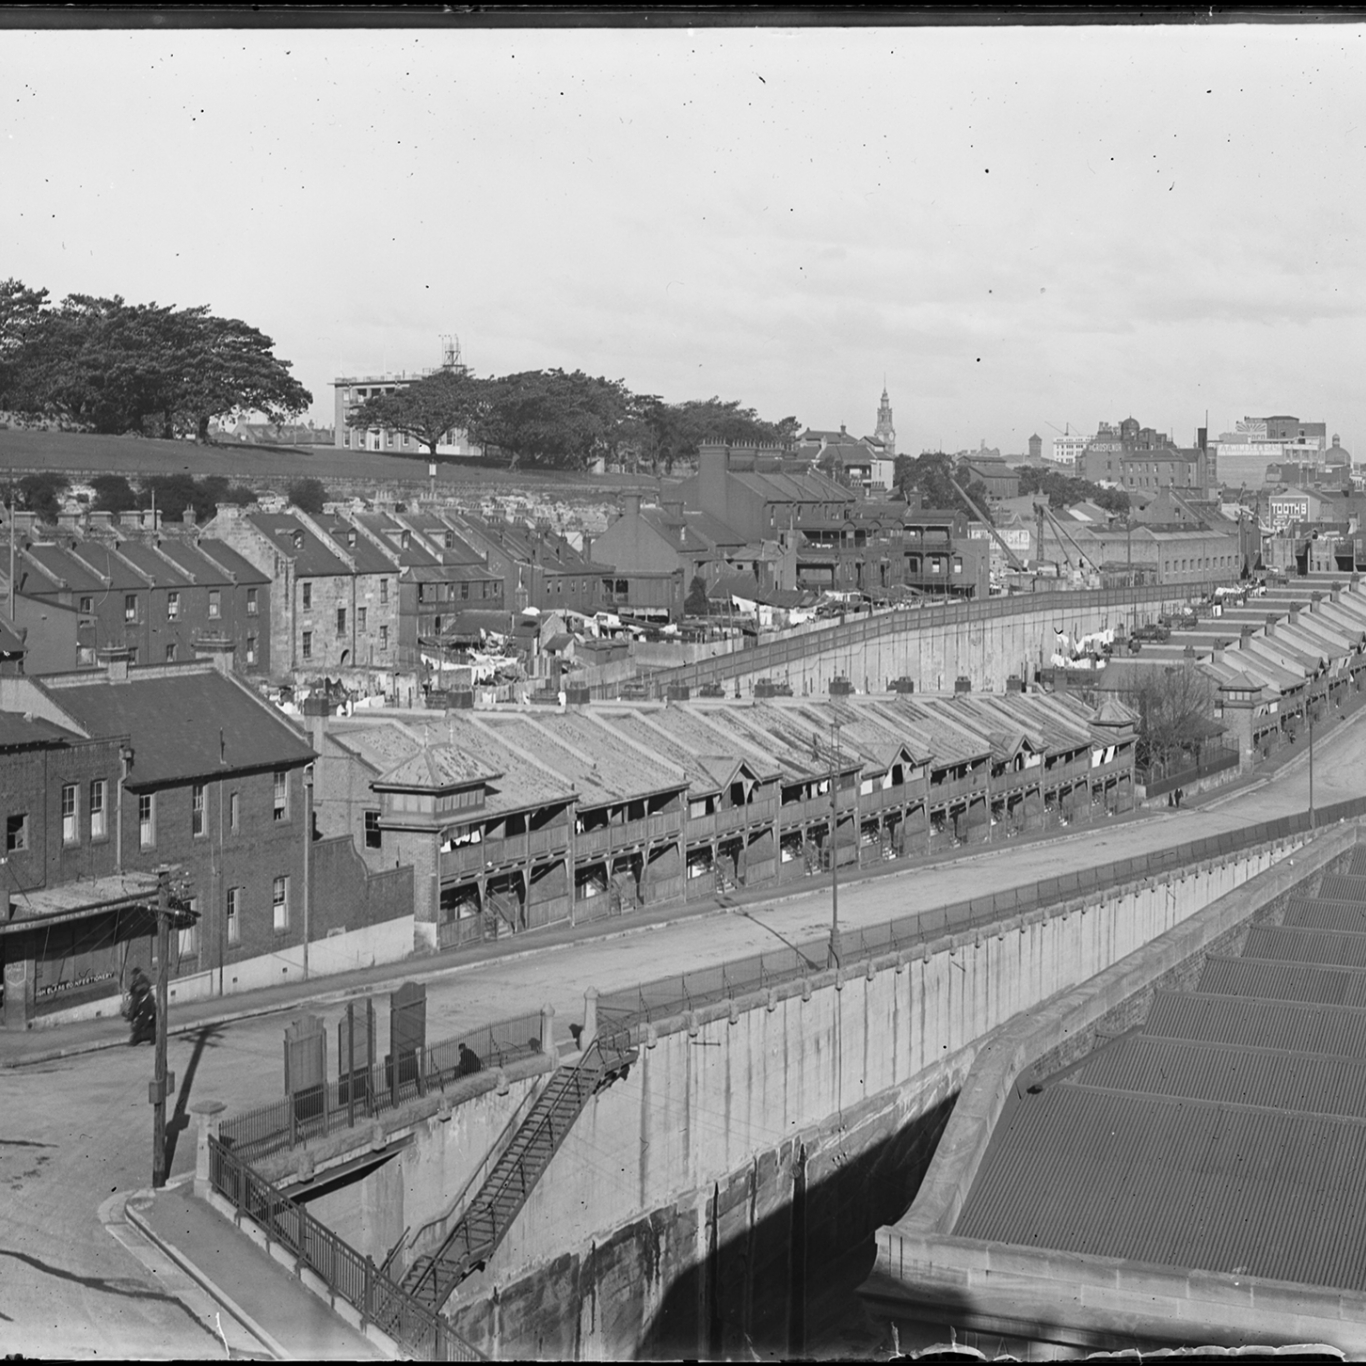 Black and white photograph of rows of terrace houses.